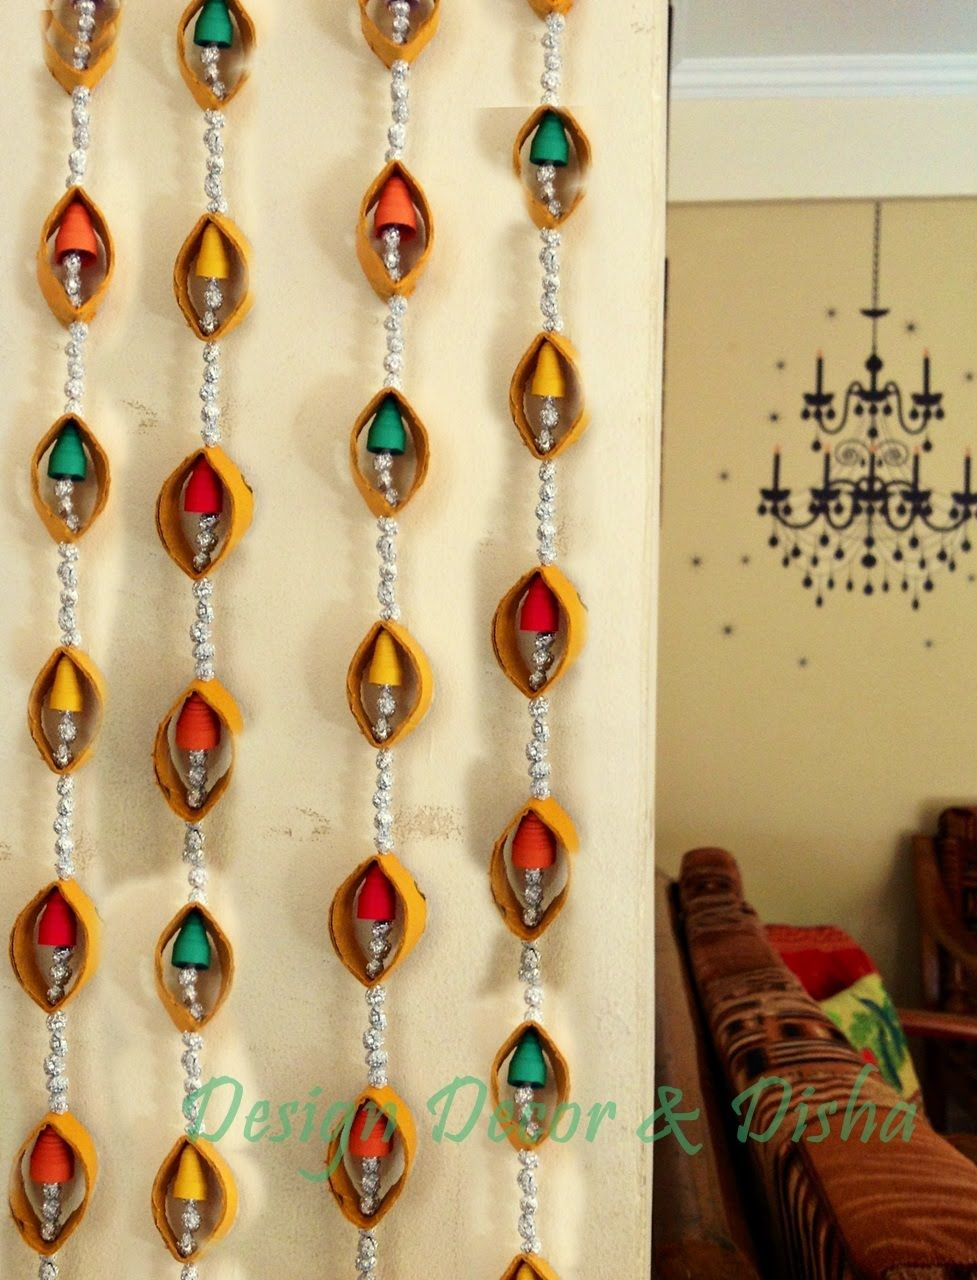 Wall Hanging Ideas diwali craft idea -wall hanging | crafts | pinterest | diwali